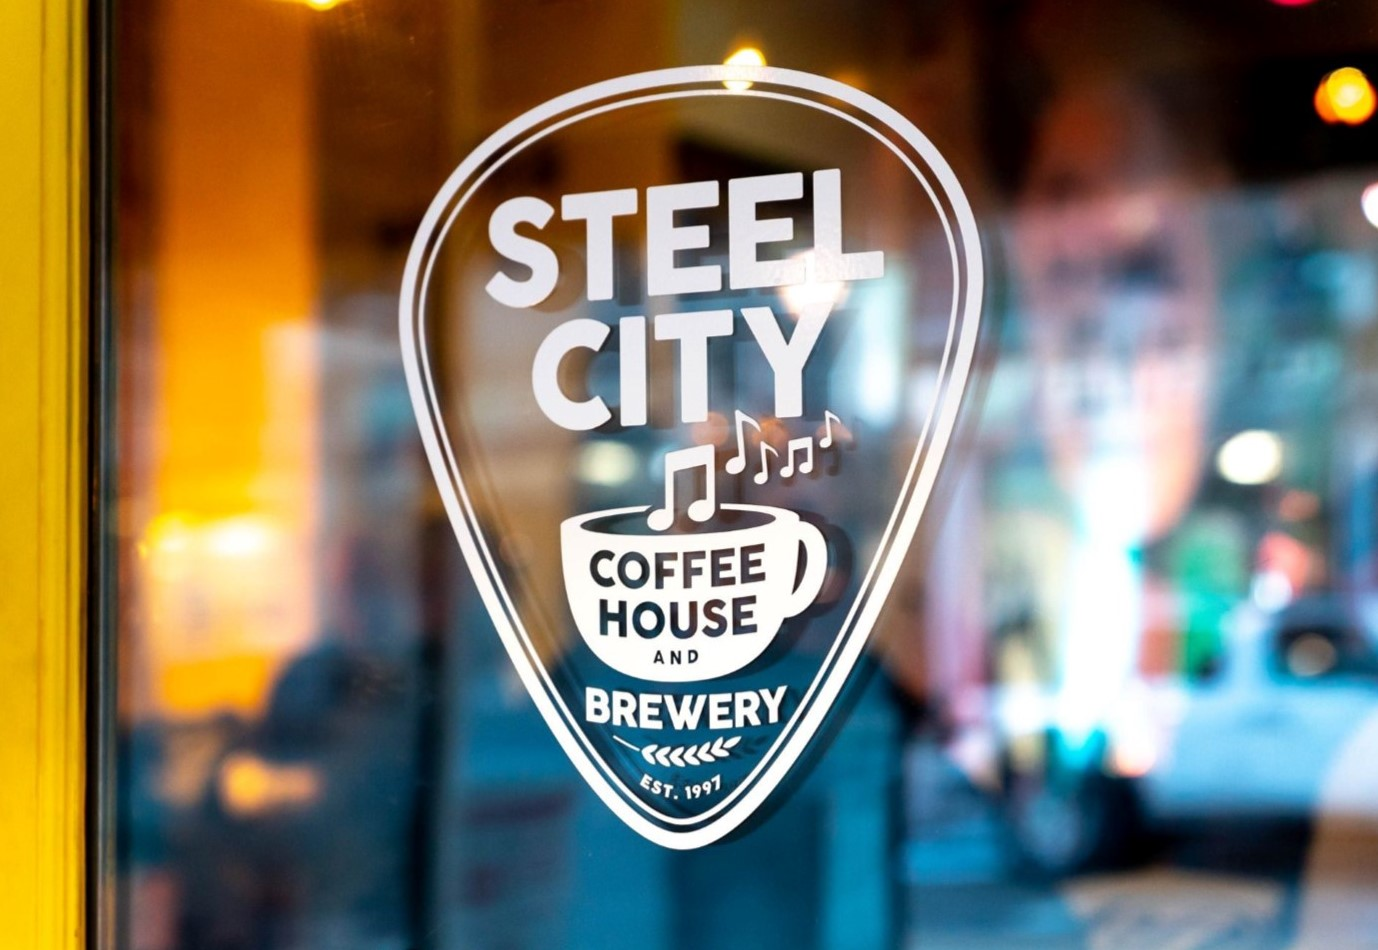 Steel City Coffeehouse in Phoenixville Trying to Stay Afloat Amidst Uncertain Times